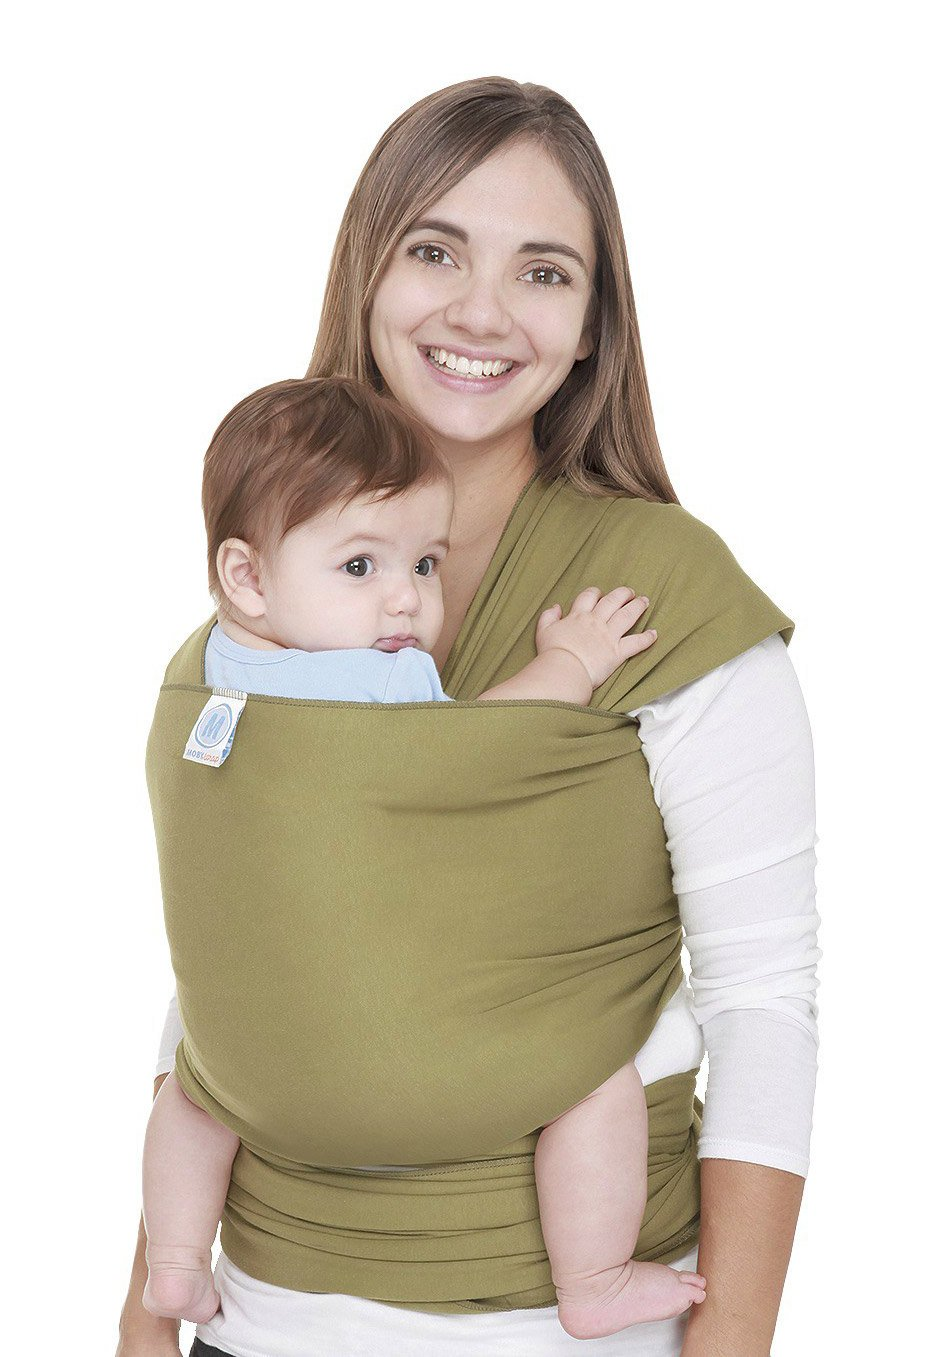 f6ff59a0baf Get Quotations · Moby Wrap Original 100% Cotton Baby Carrier